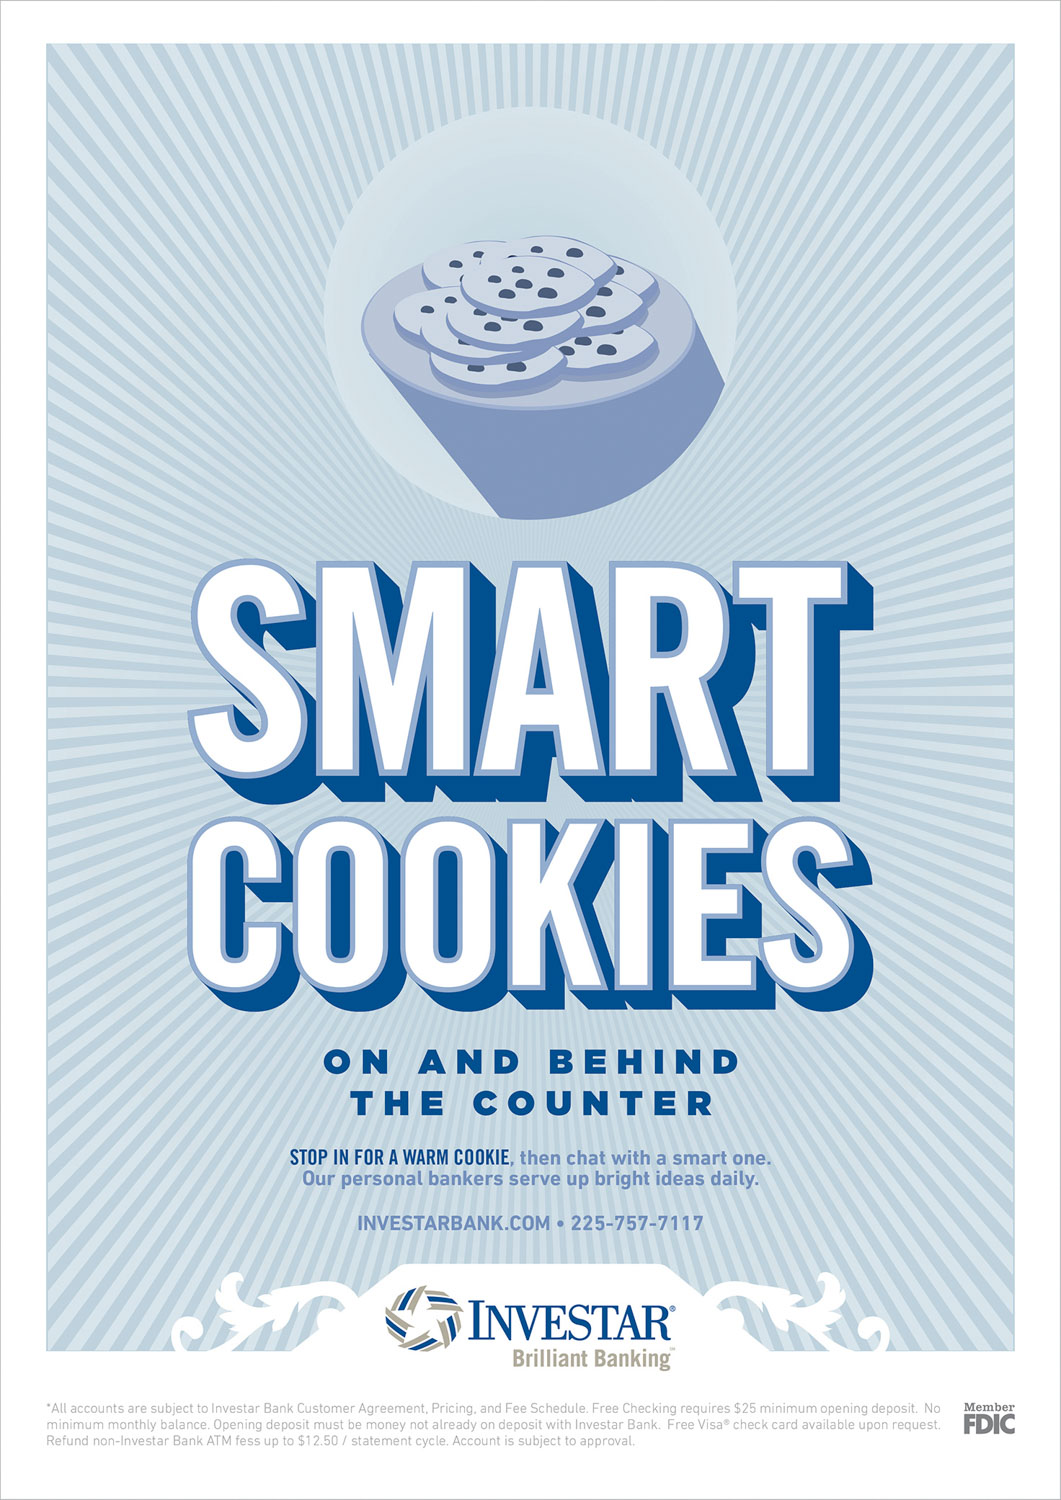 INV: Print Ad — Smart Cookies